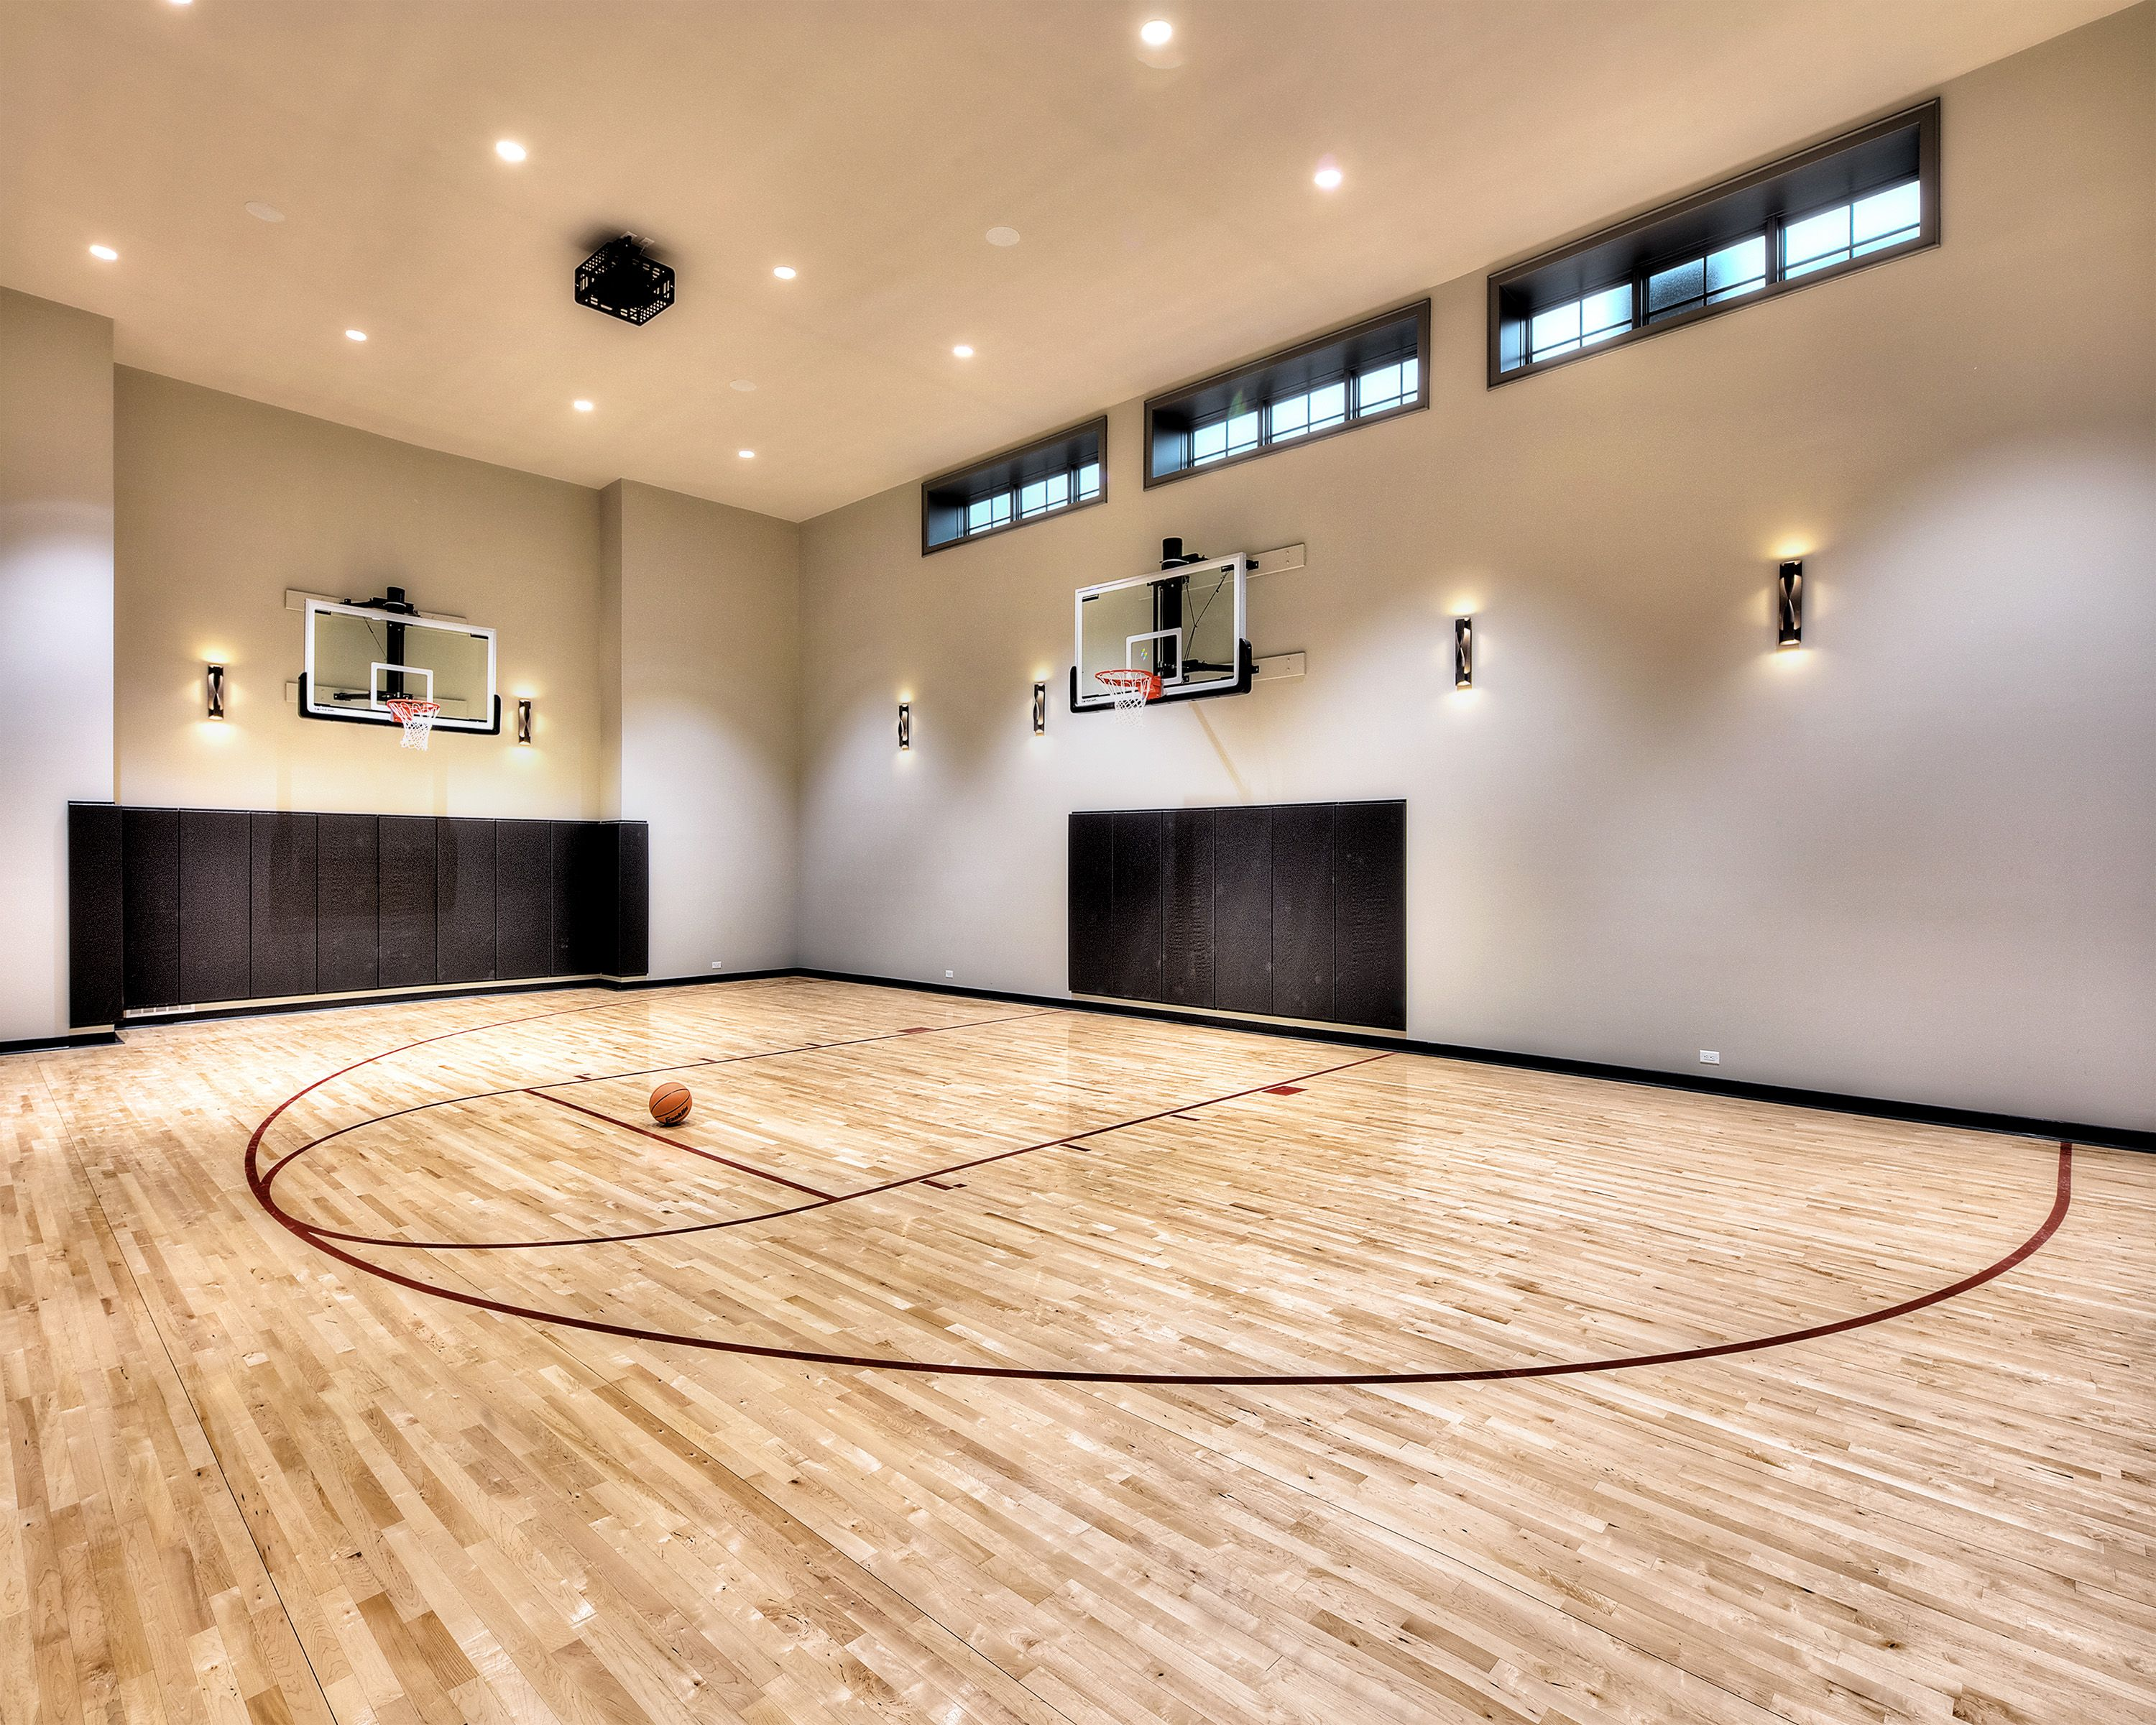 Indoor basketball court 2015 kansas city home of for House with indoor basketball court